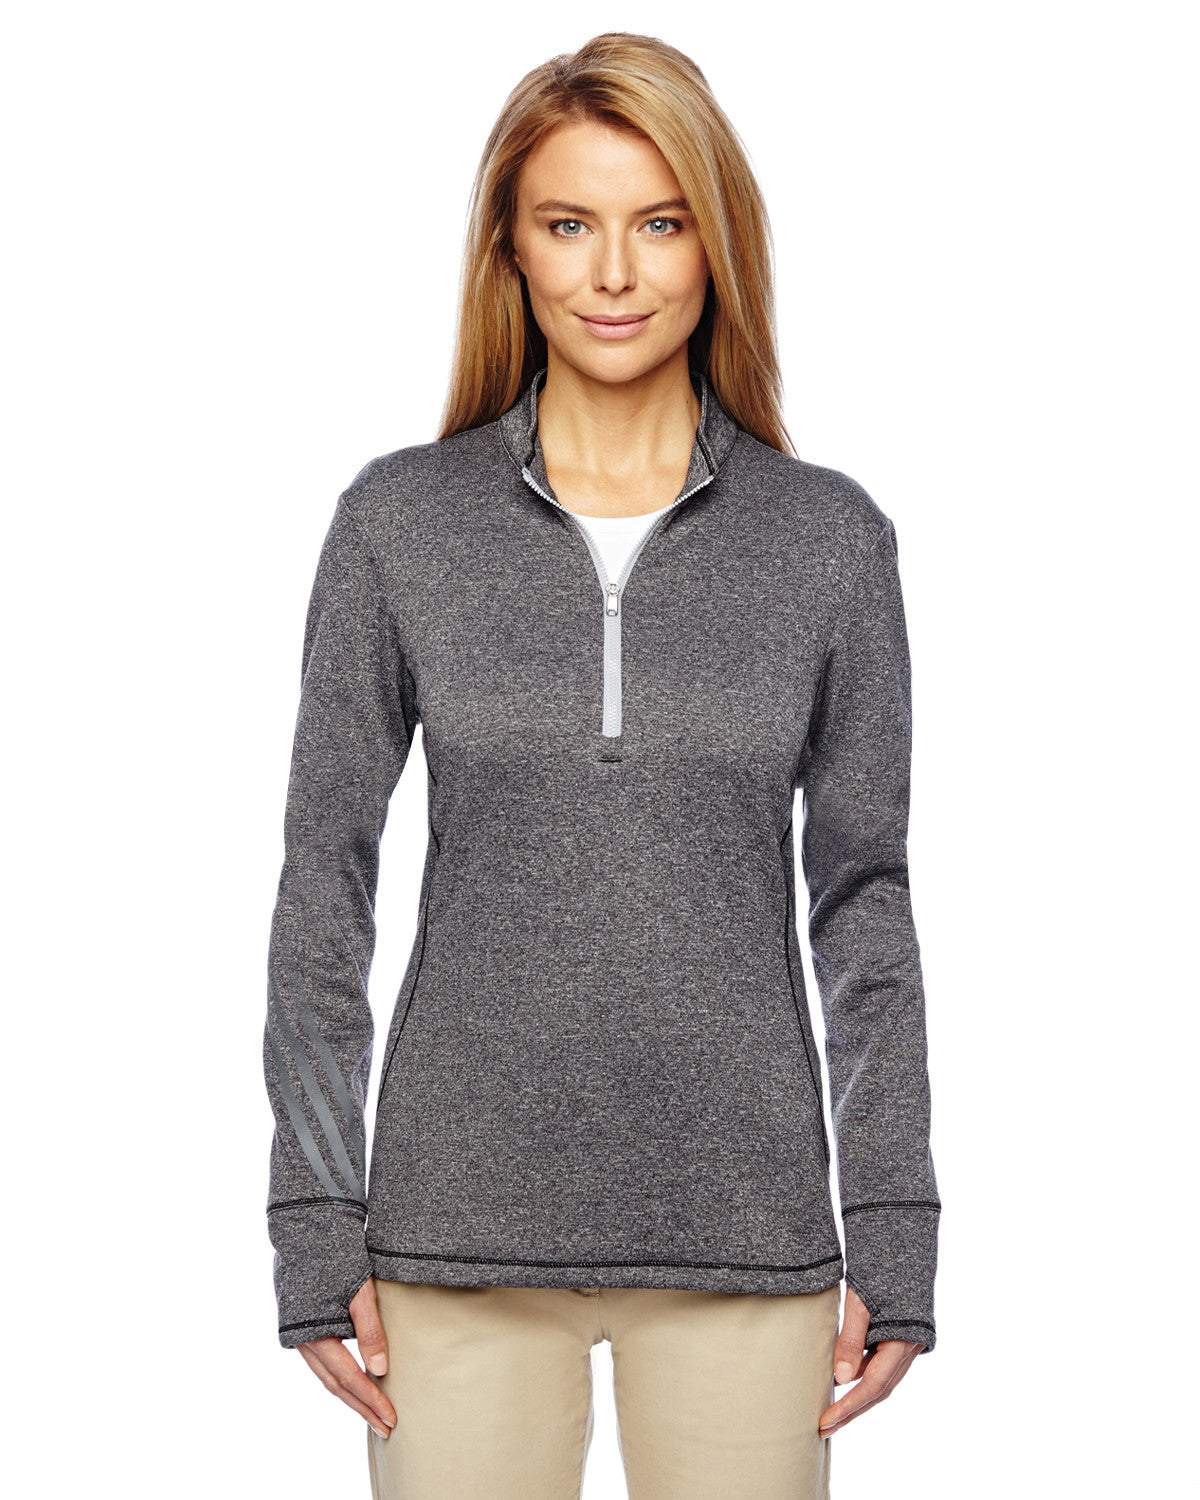 Golf Ladies Brushed Heather 1/4 Zip Pullover